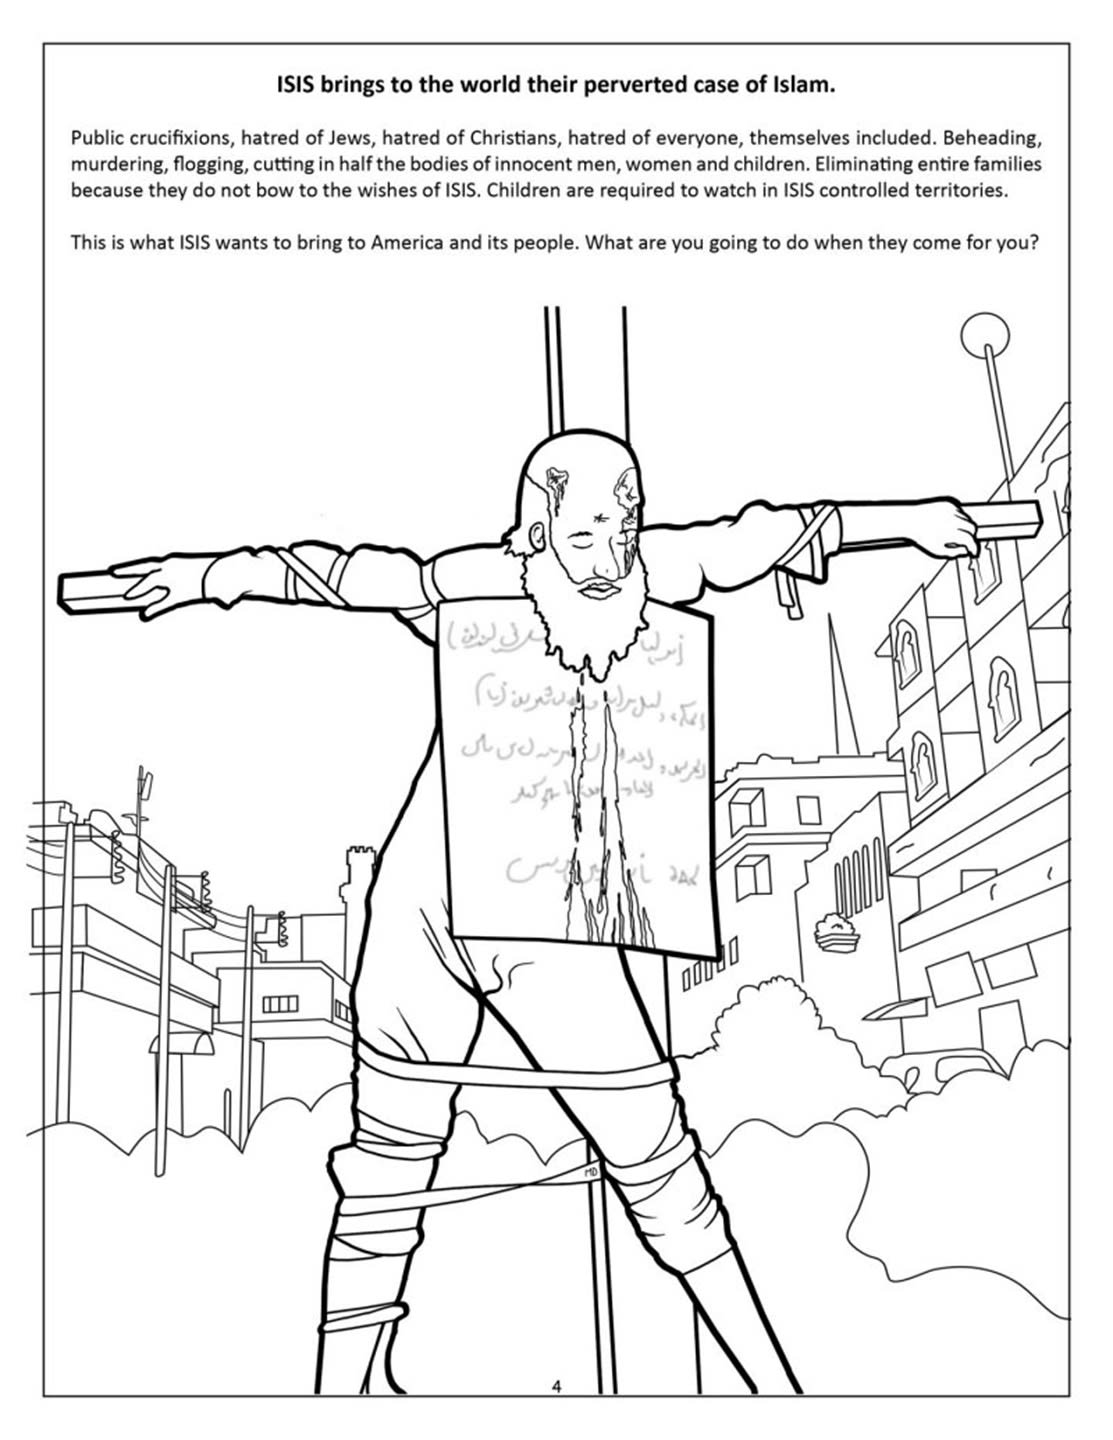 Ted Cruz saves America in This Right-Wing Coloring Book